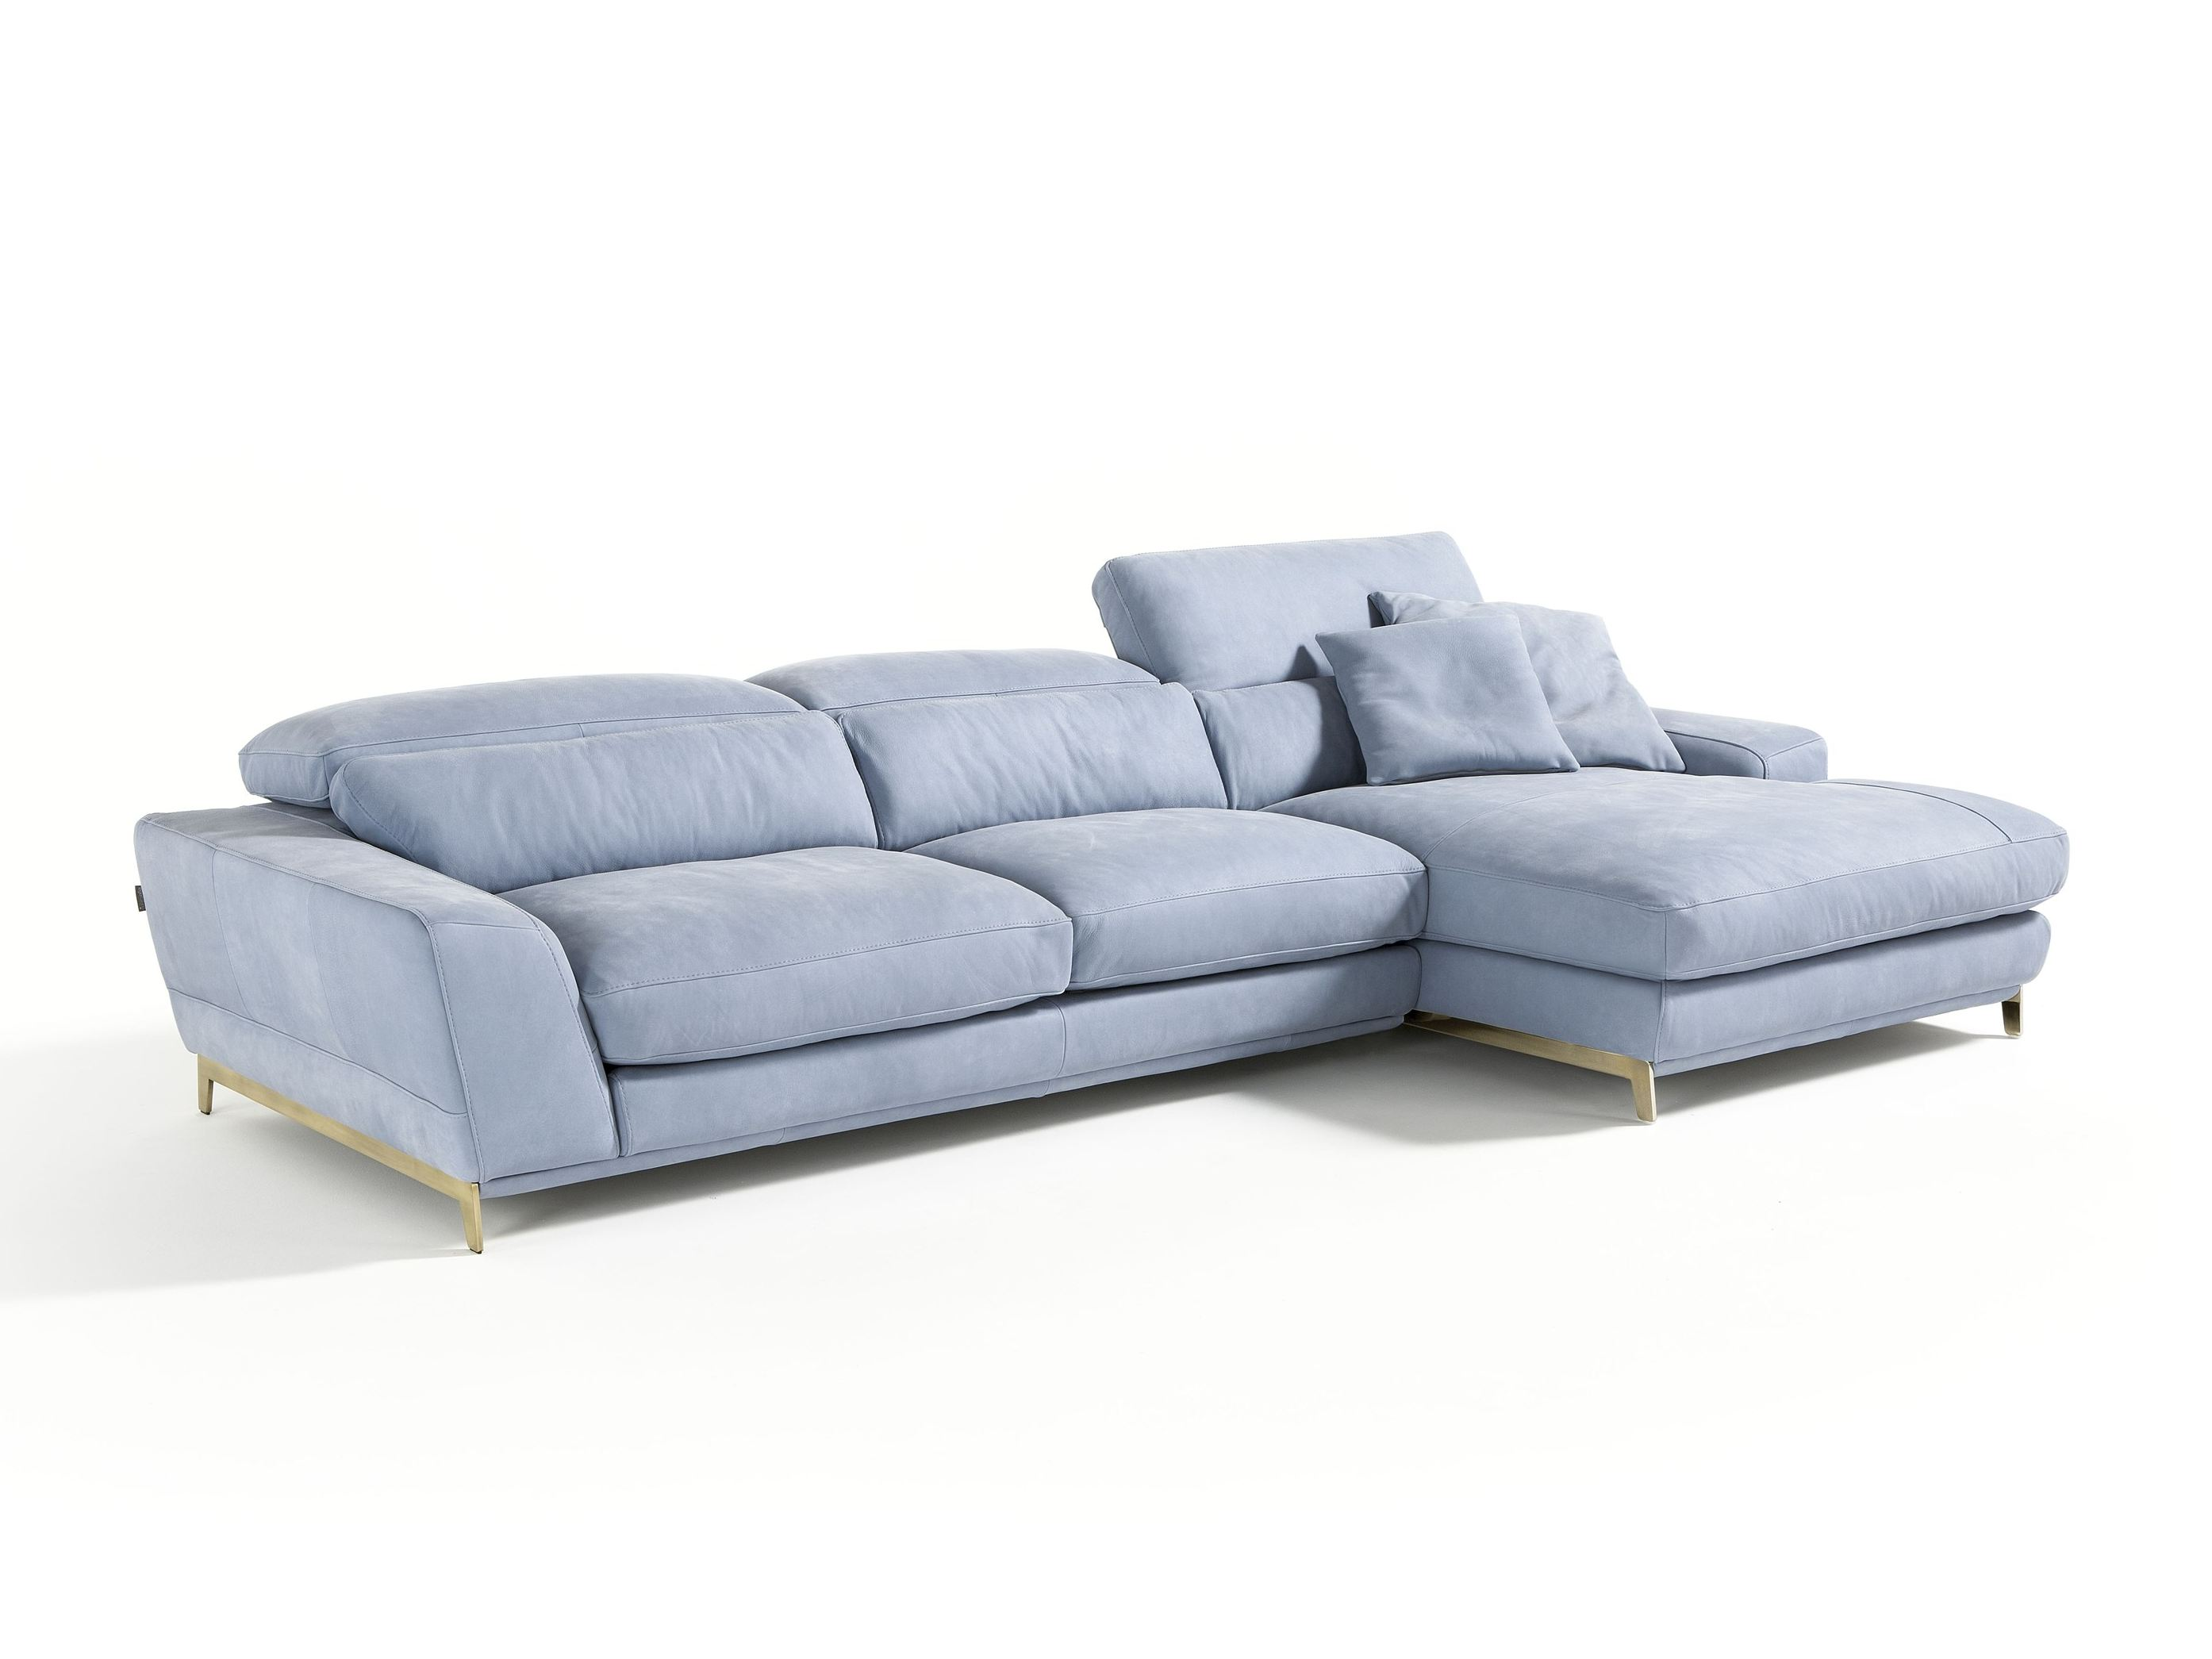 Sofa with chaise longue boomer by egoitaliano for Catalogos de sofas chaise longue